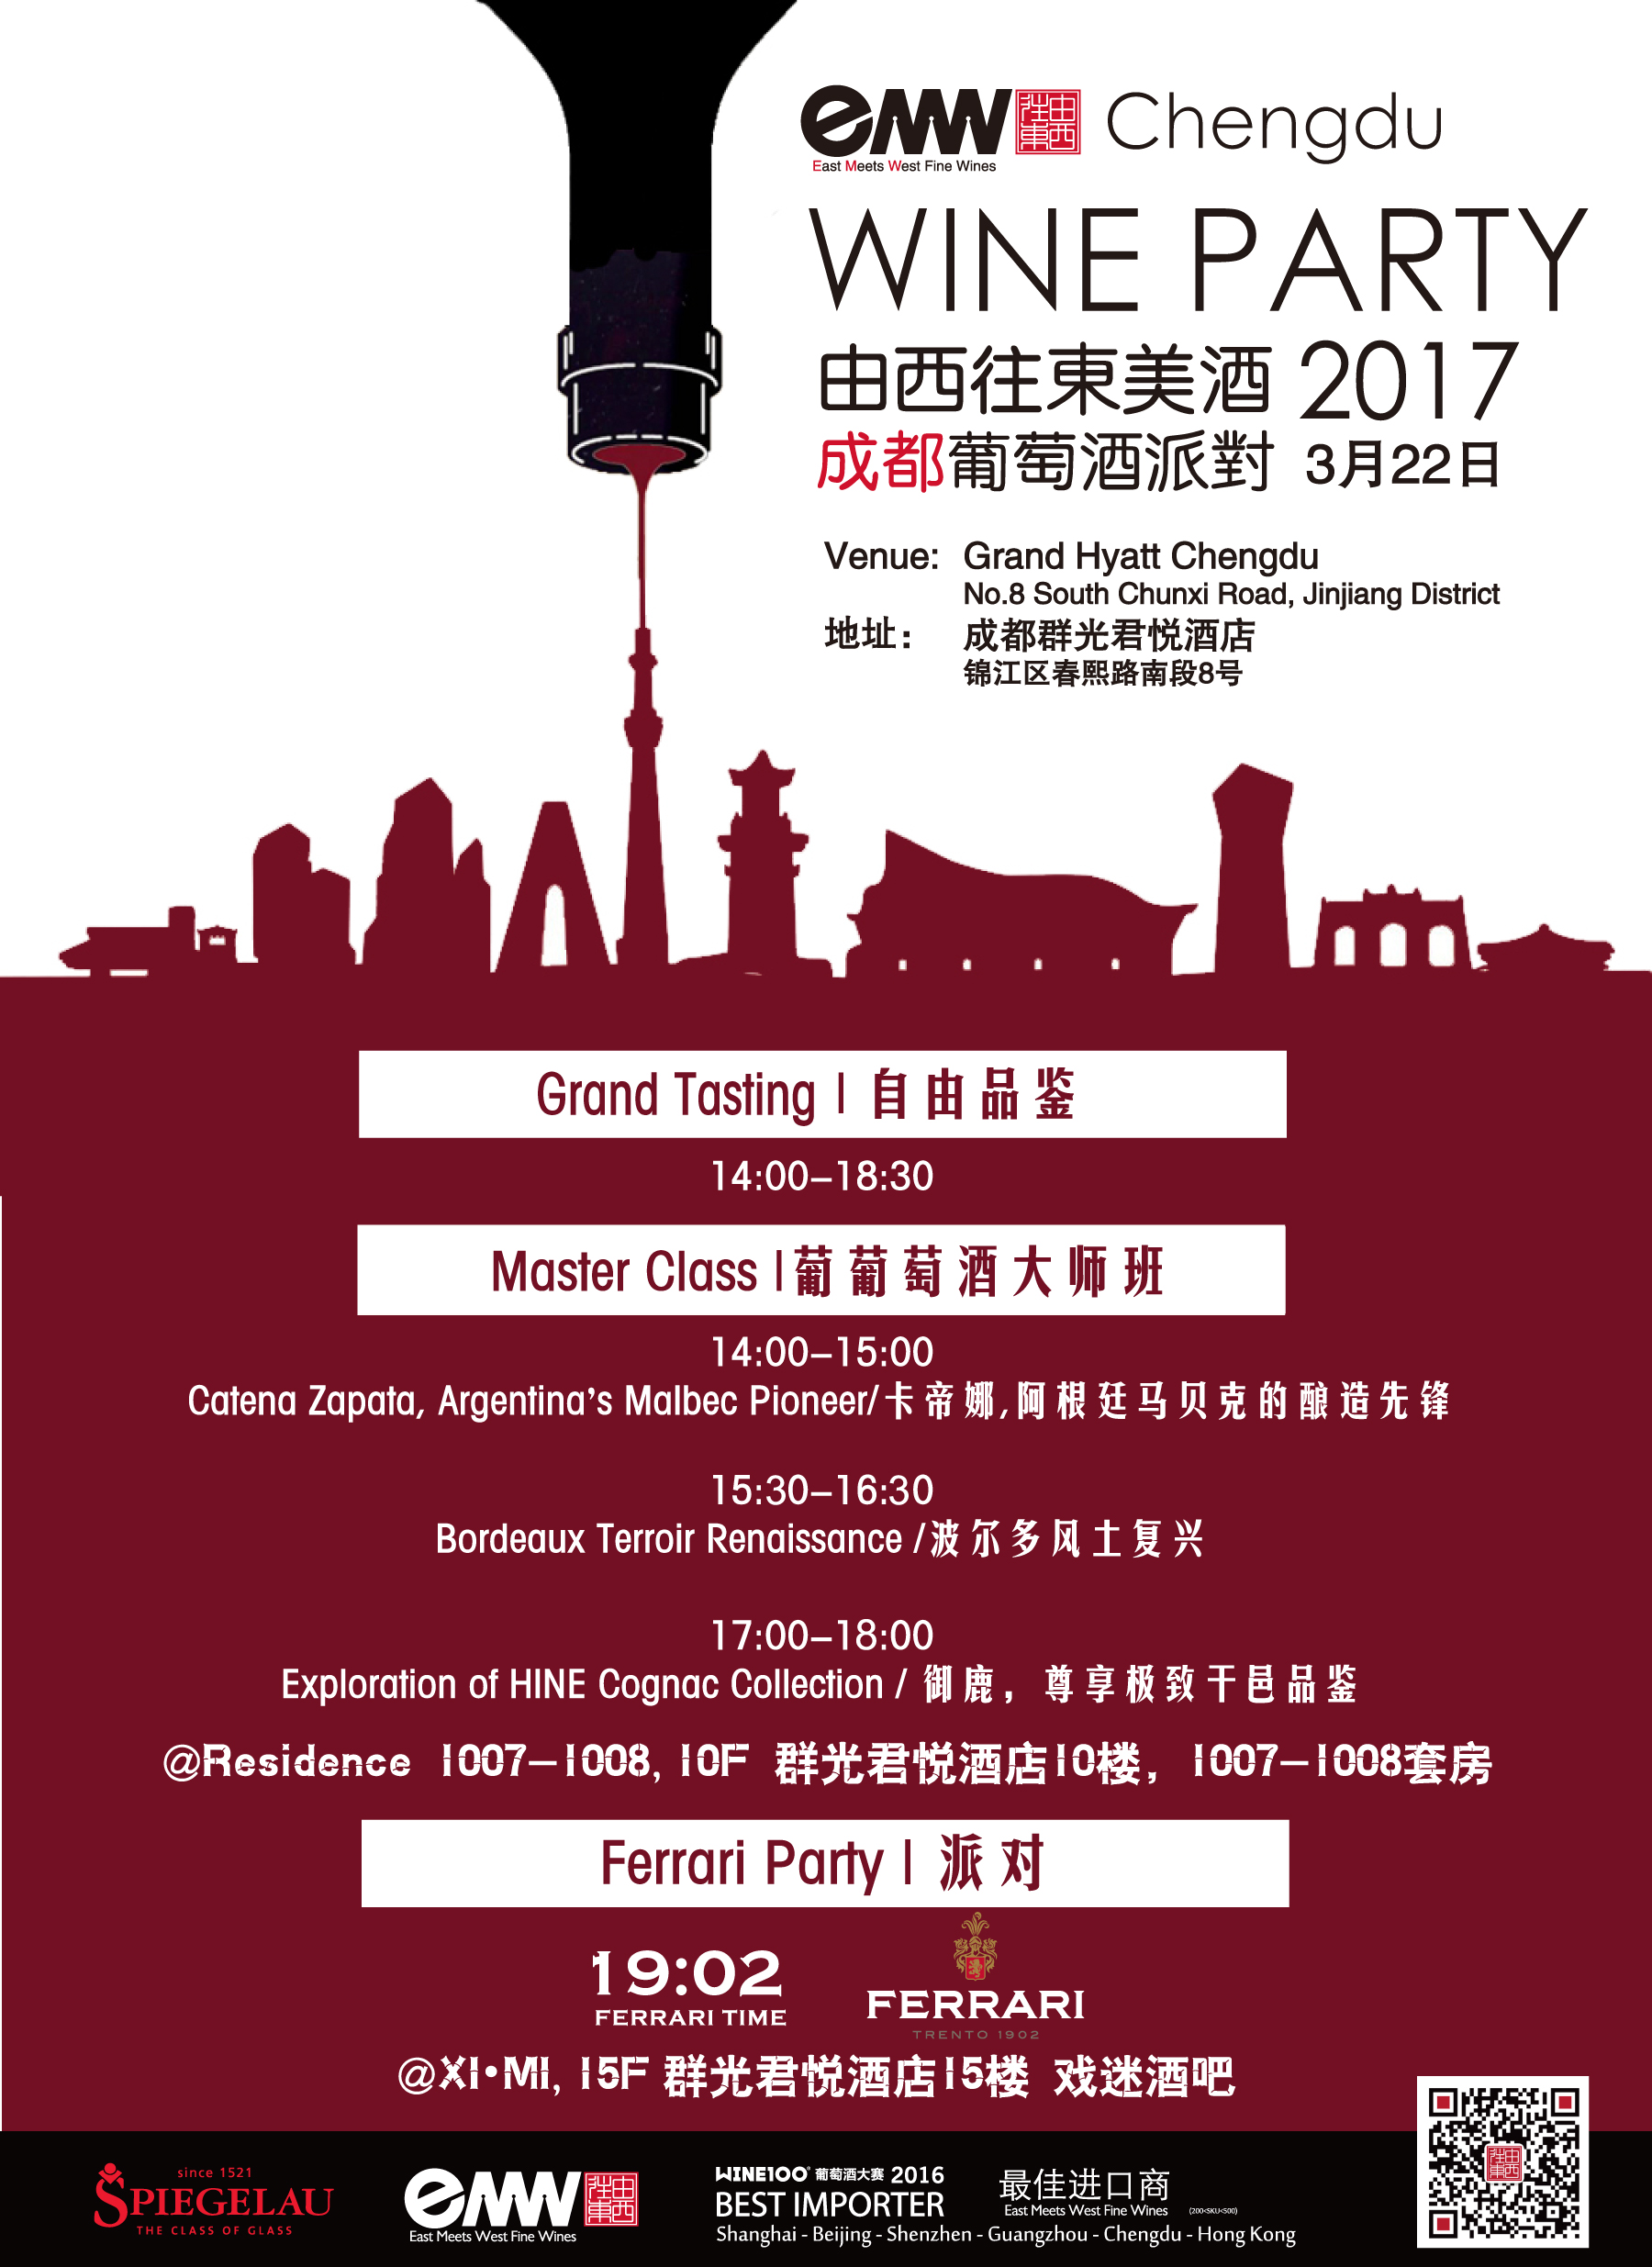 Chengdu Wine Party